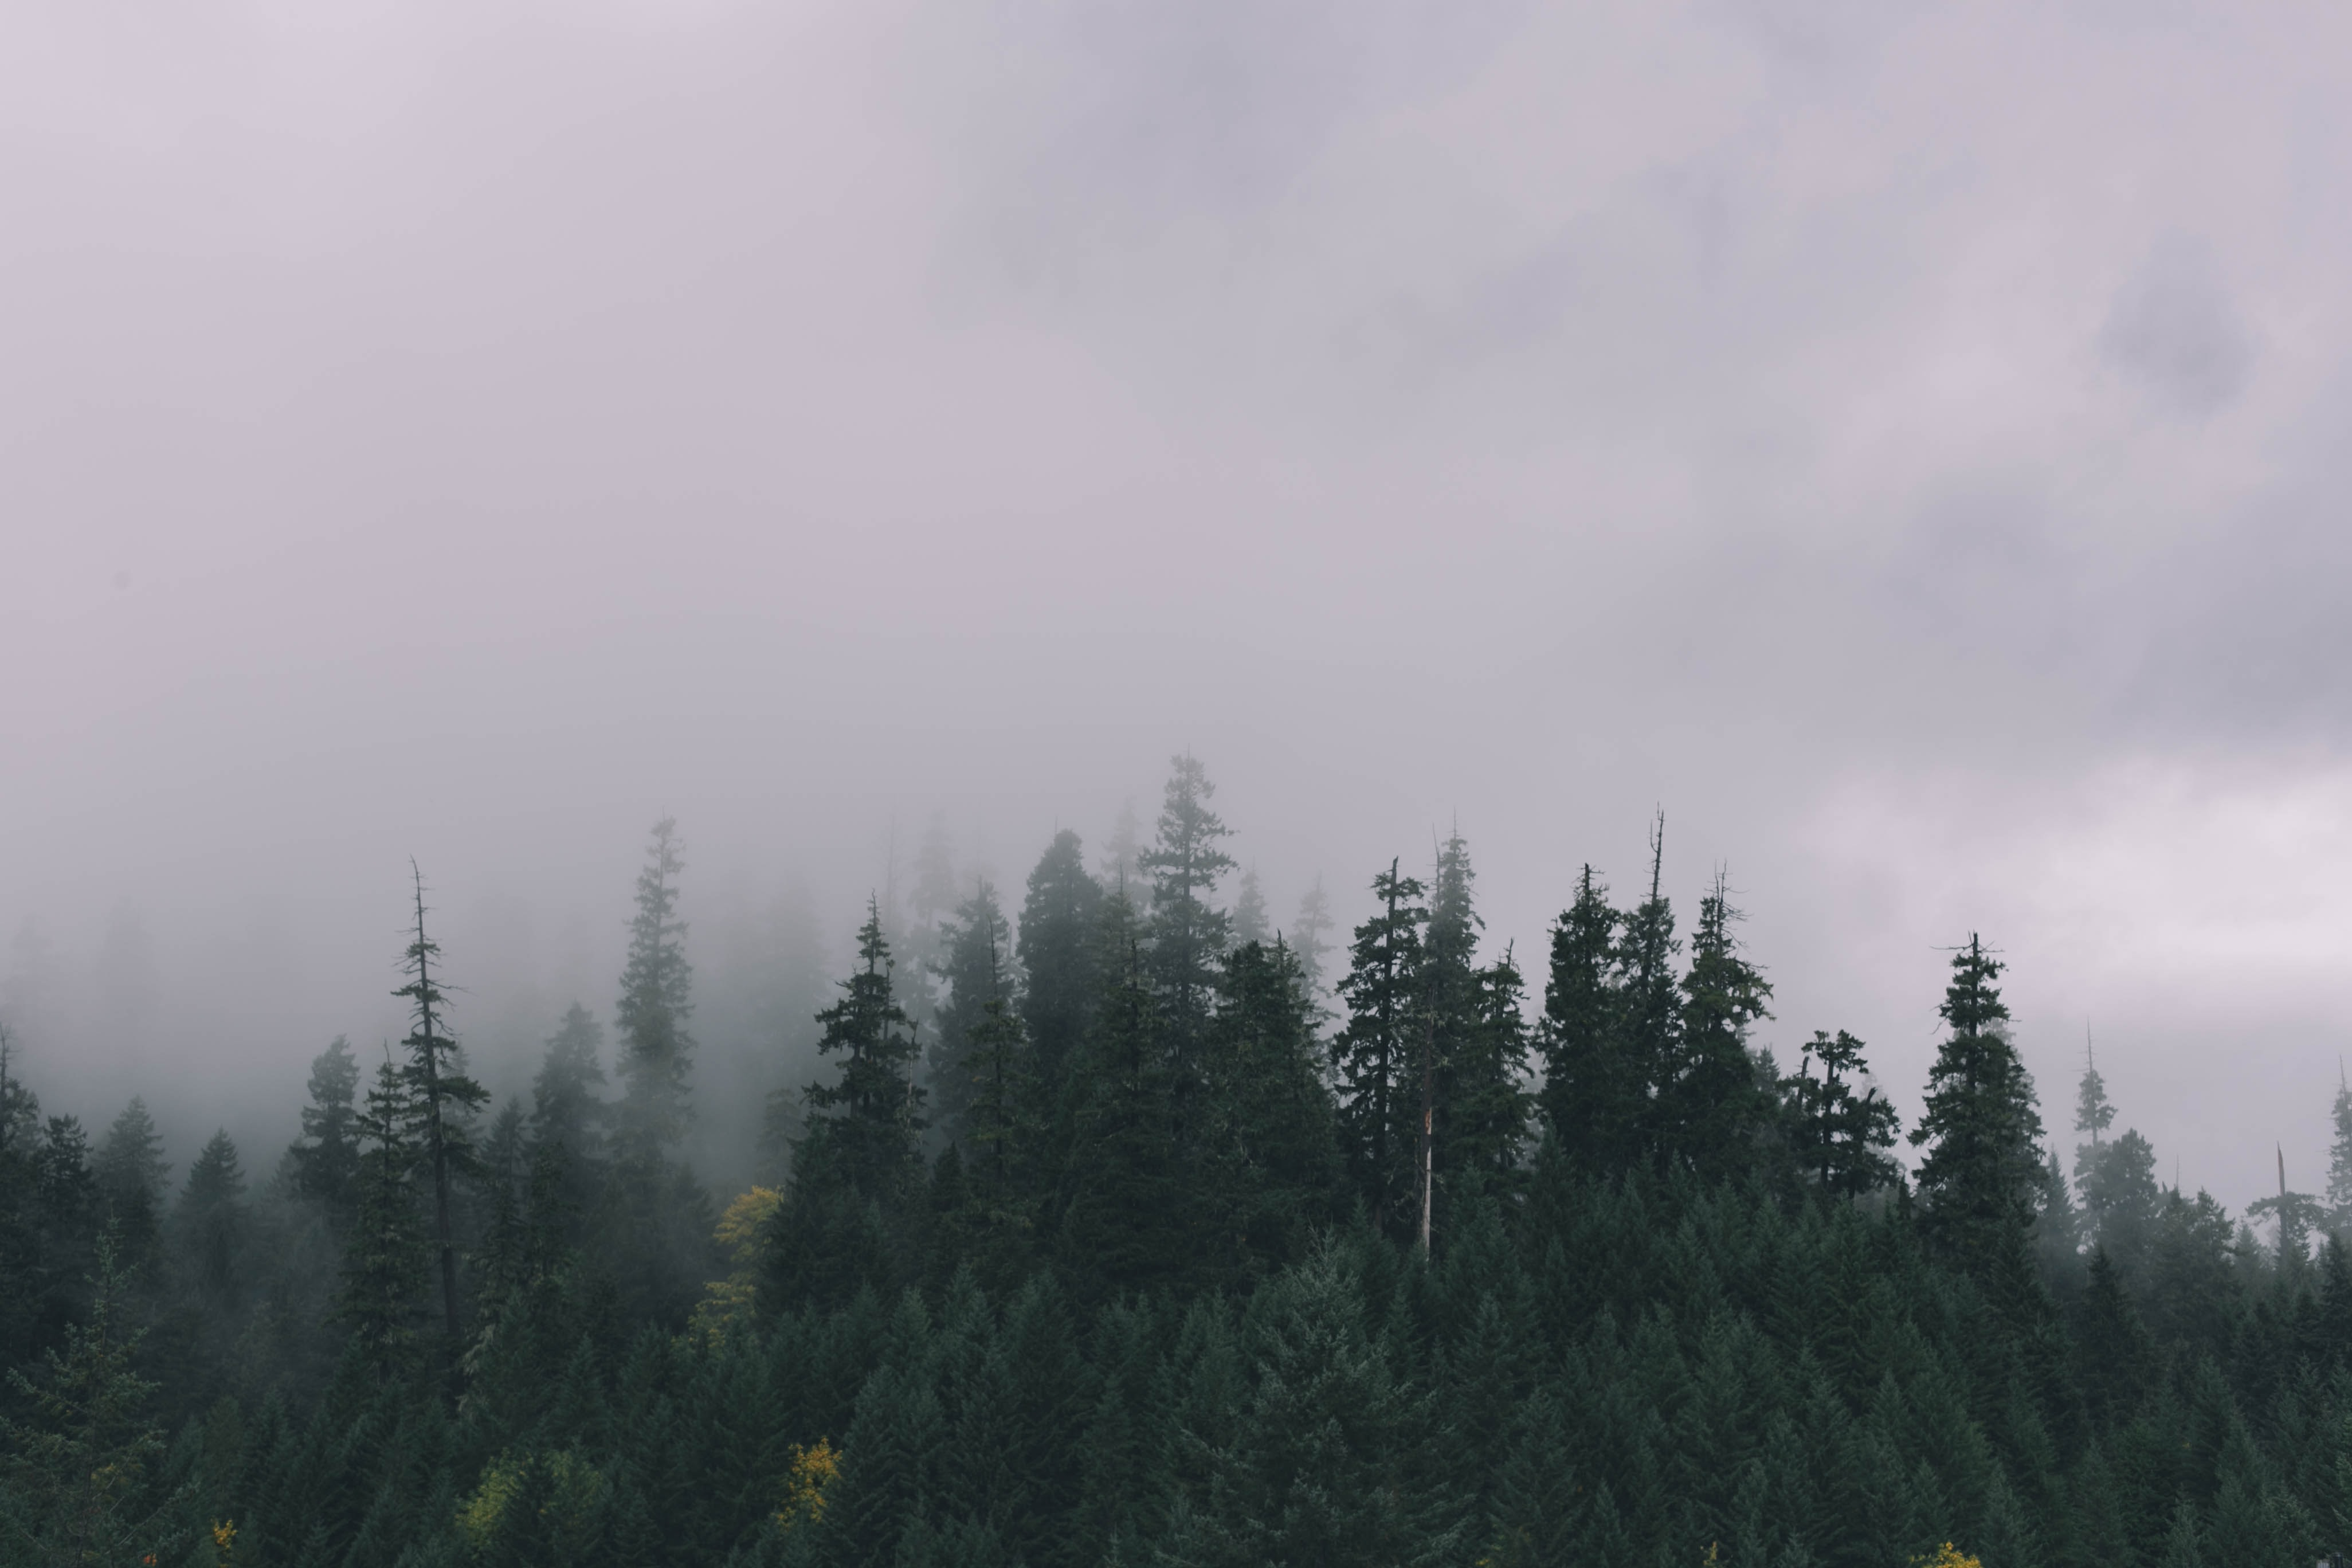 A pine forest wreathed in a mist on a cloudy day